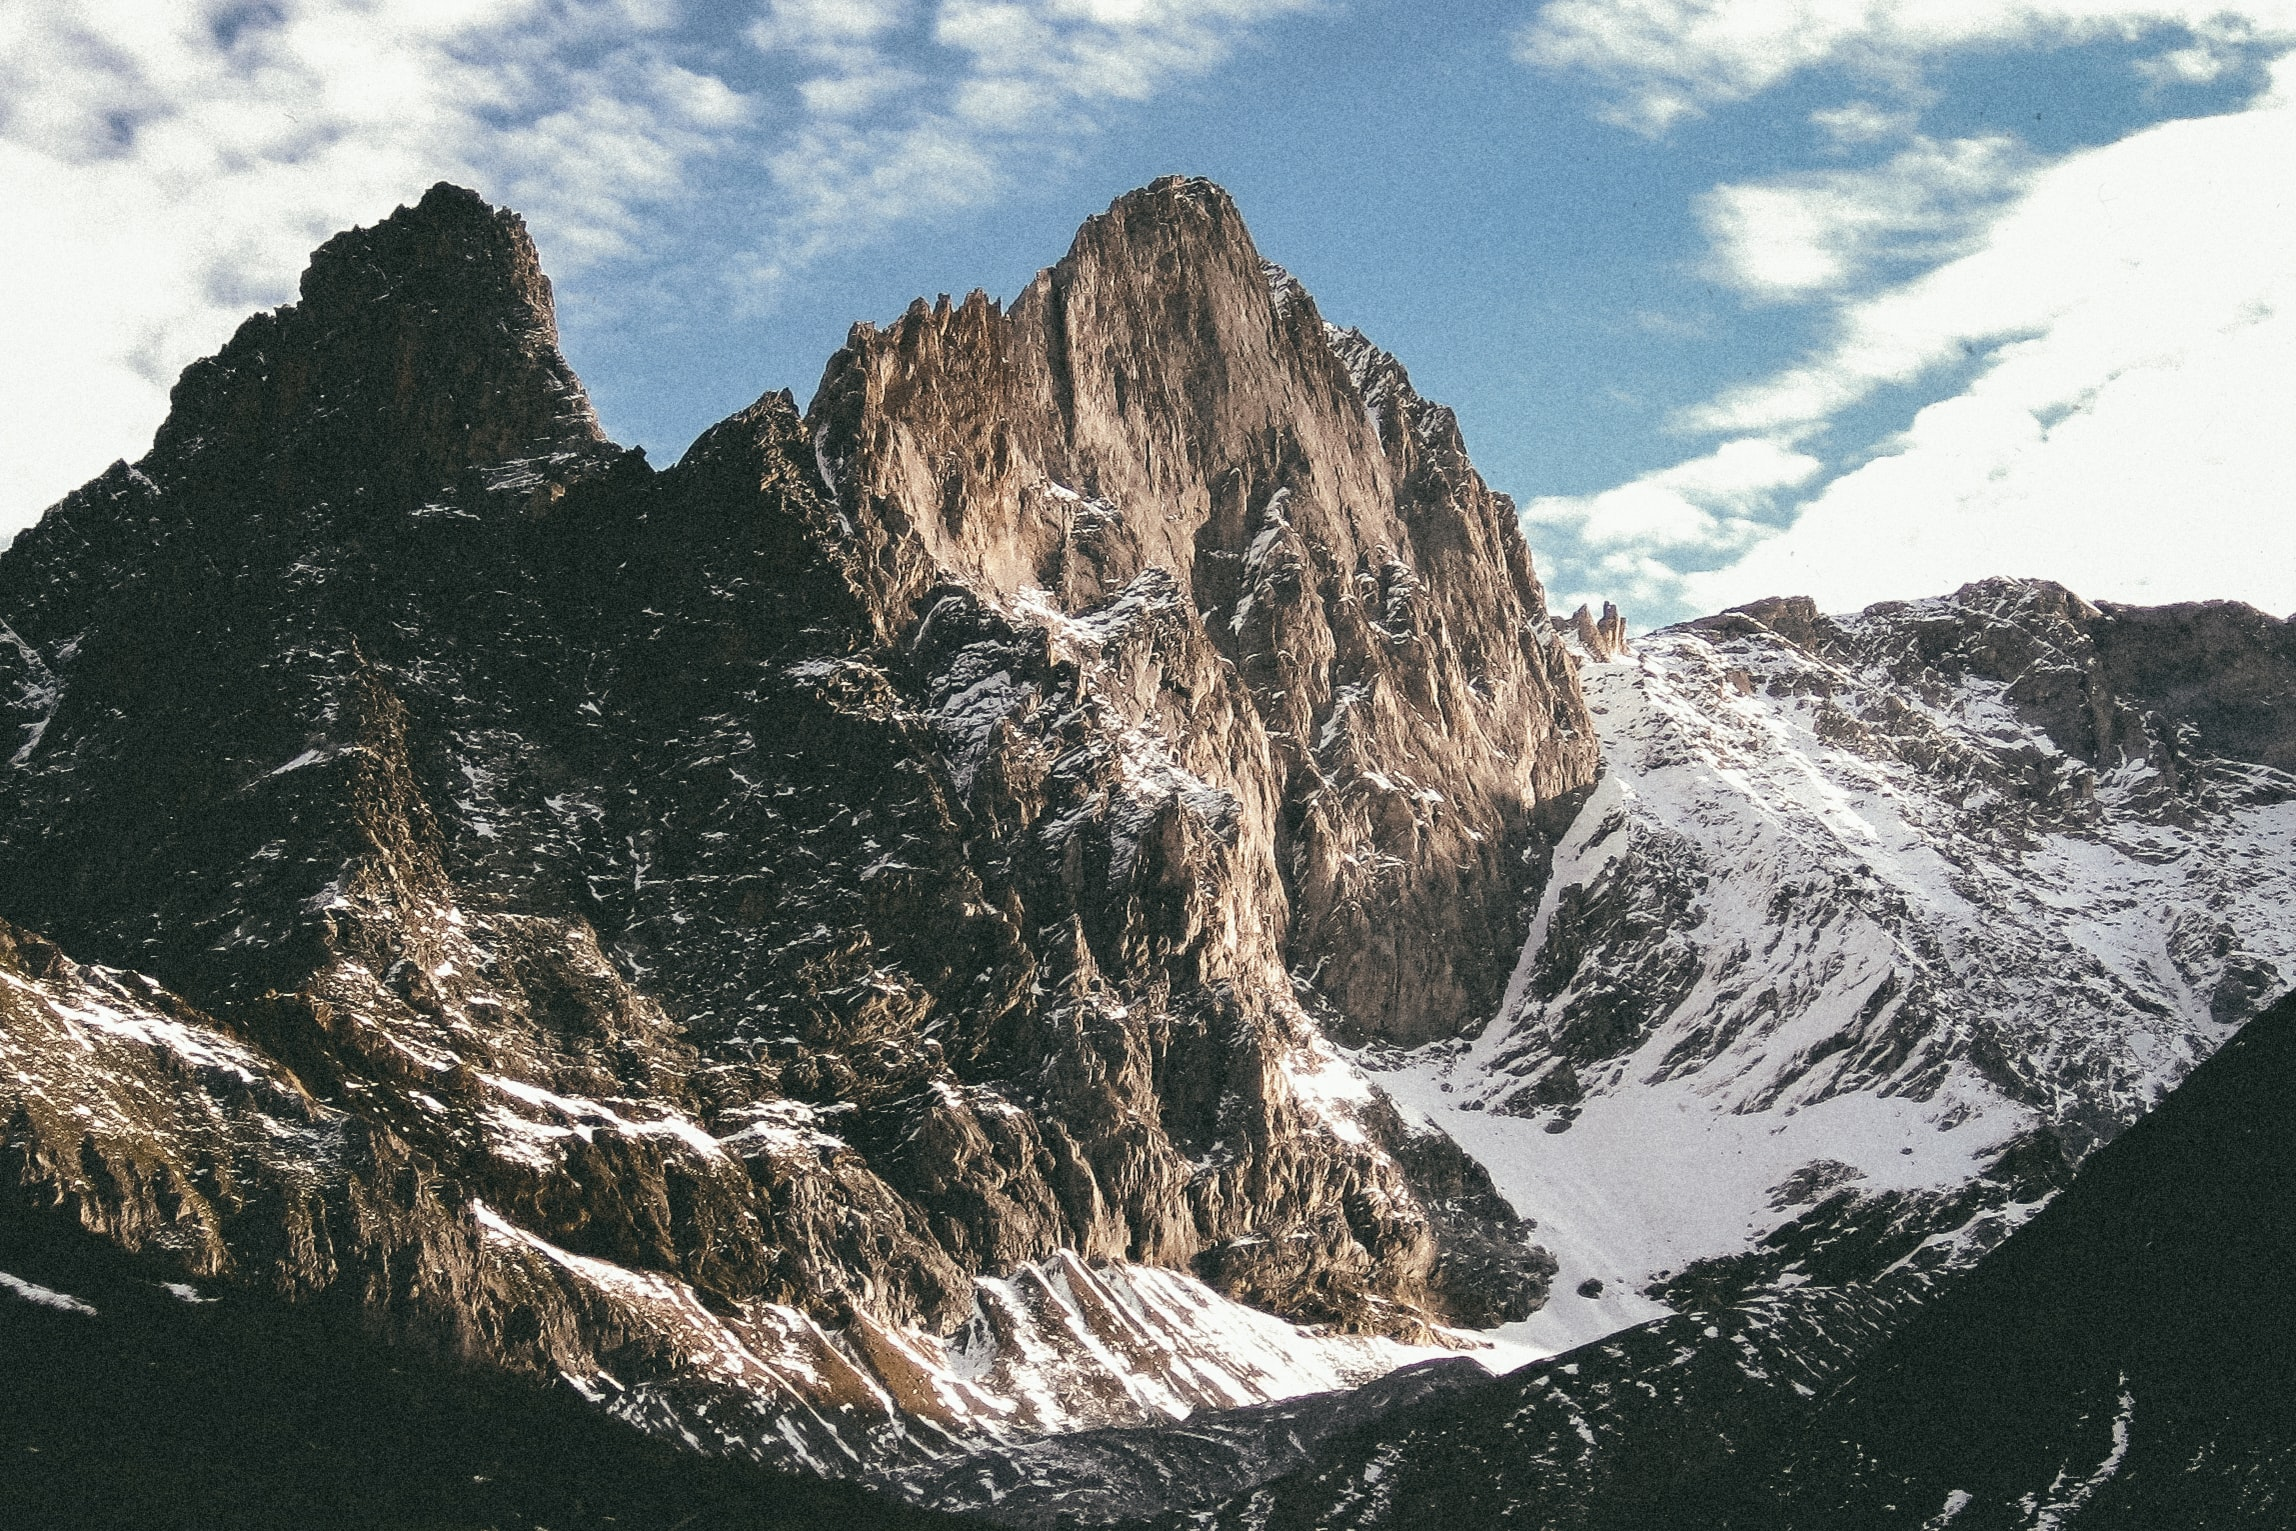 A steep granite ridge in Vanoise National Park